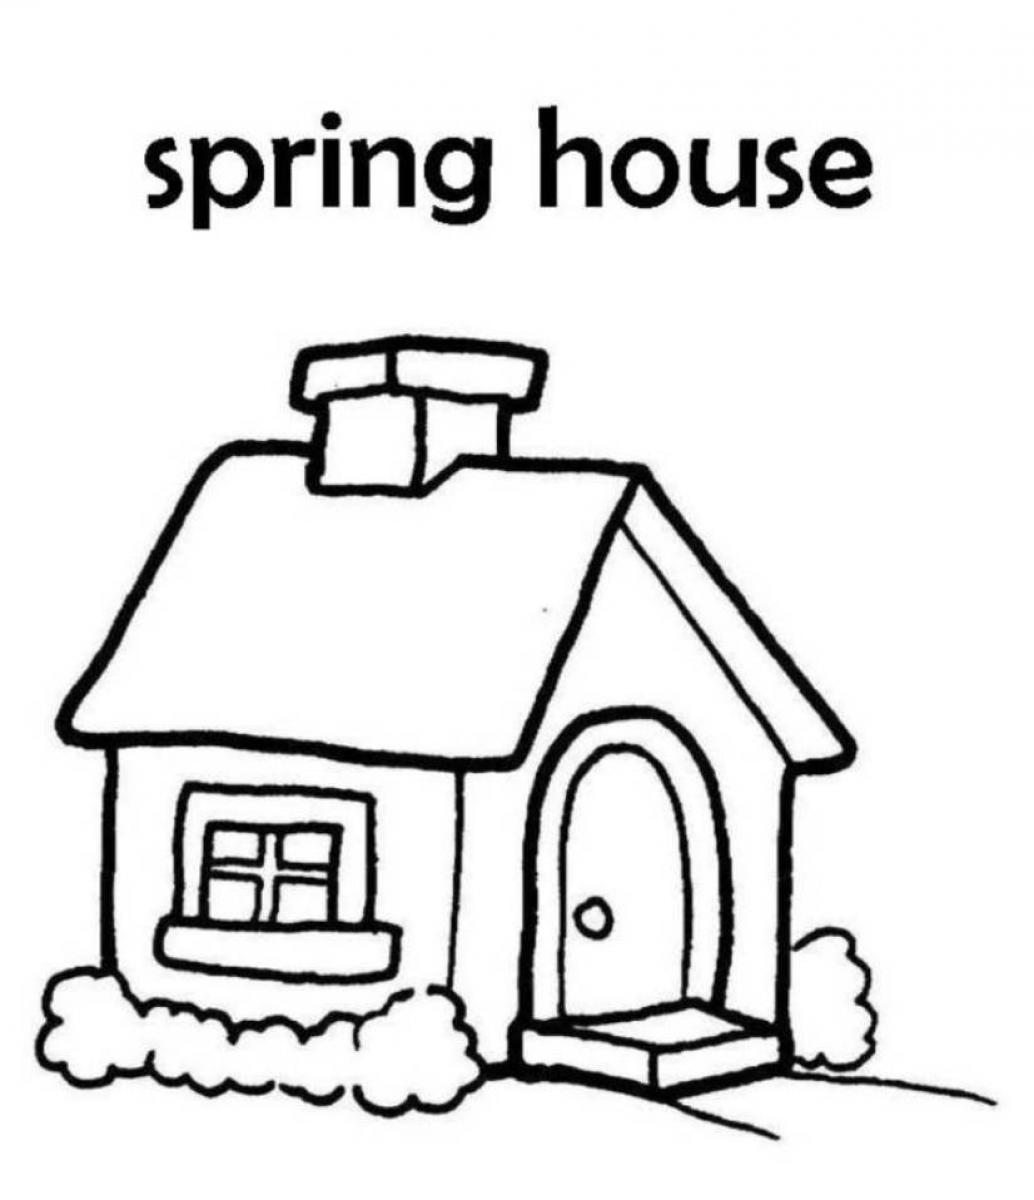 Gingerbread House Coloring Pages | Free download best Gingerbread ...